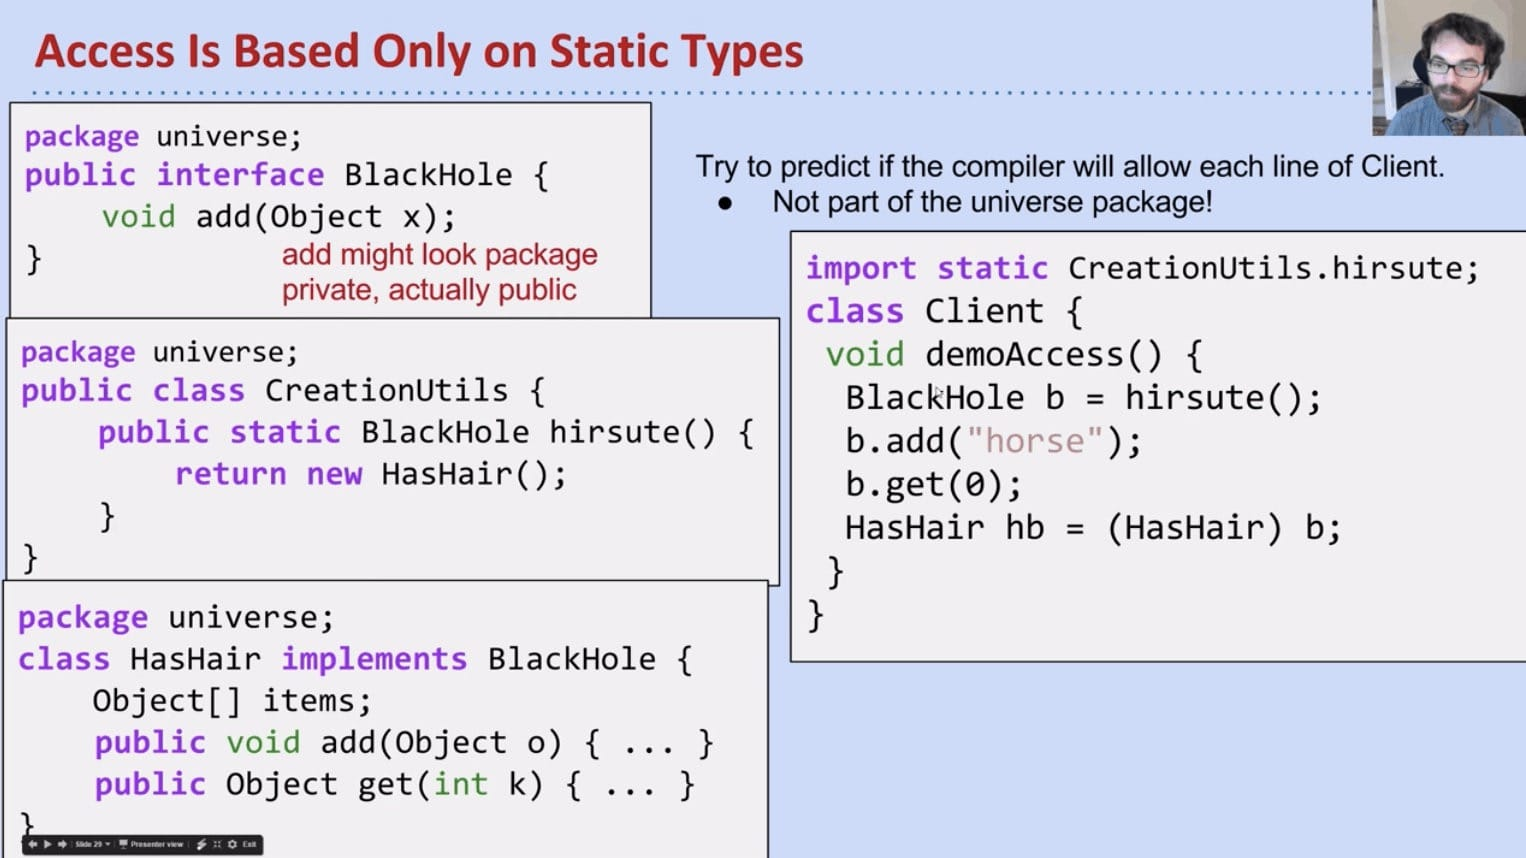 Access Is Based Only on Static Types - Client has no idea about HasHair but BlackHole